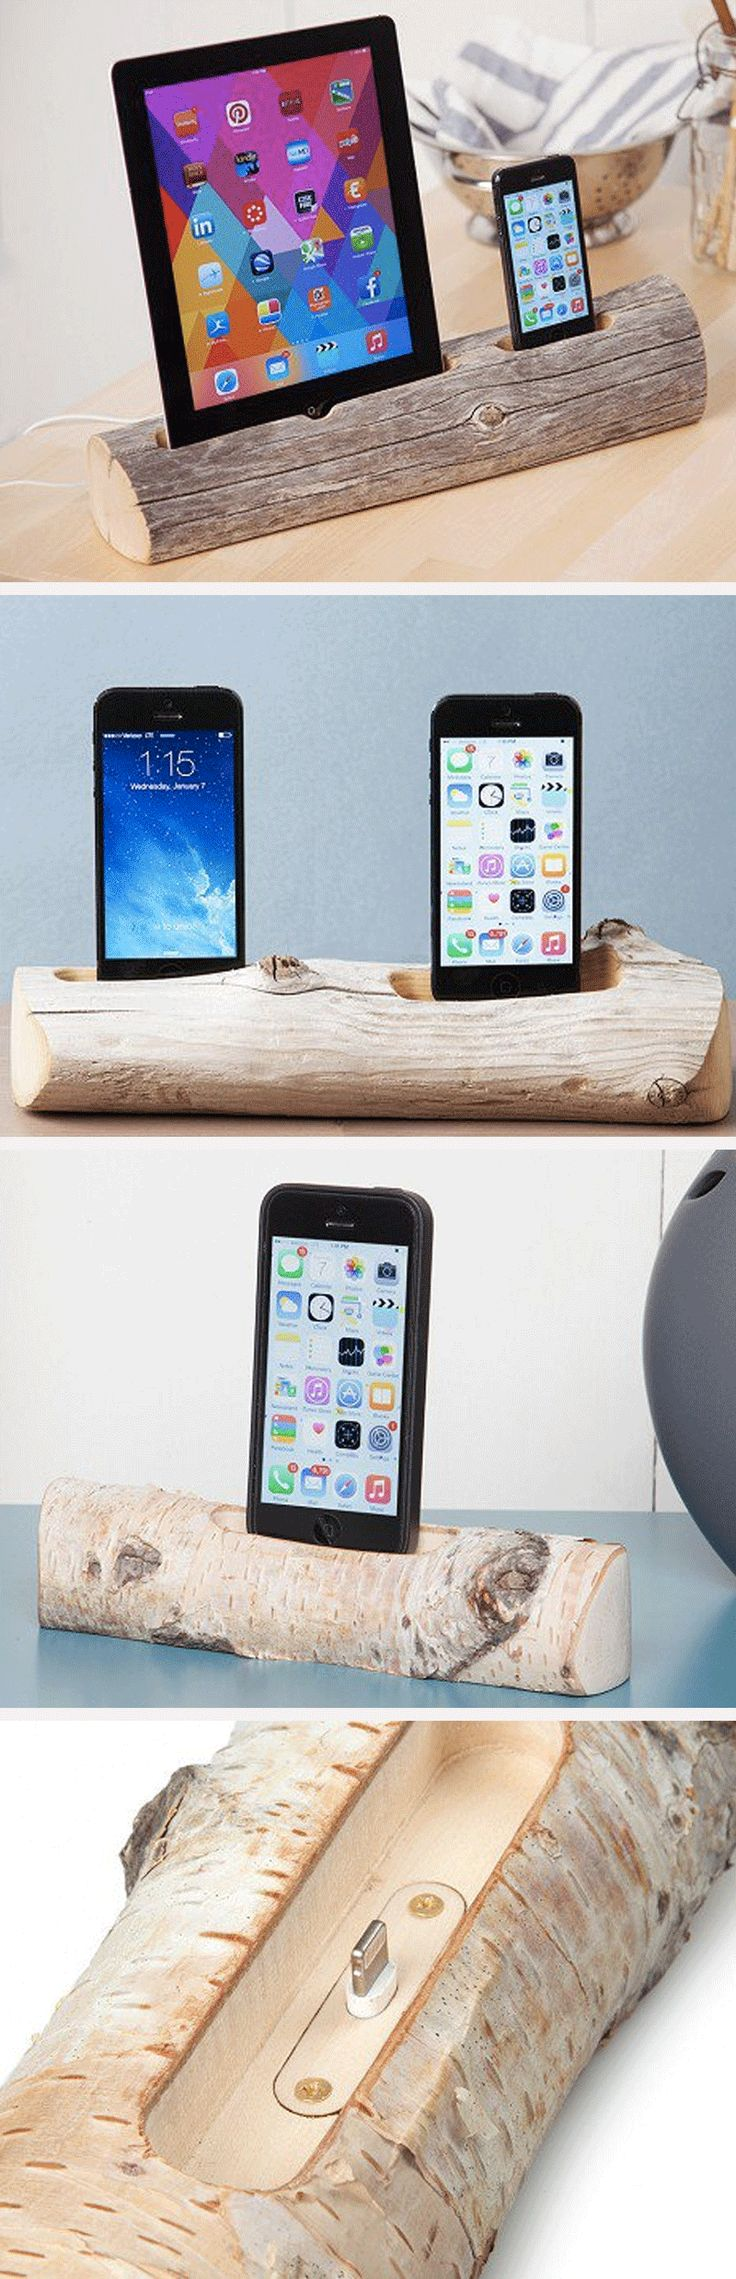 Docksmith turns unique pieces of driftwood and birch into beautiful, one-of-a-kind chargers for your smartphone or tablet.